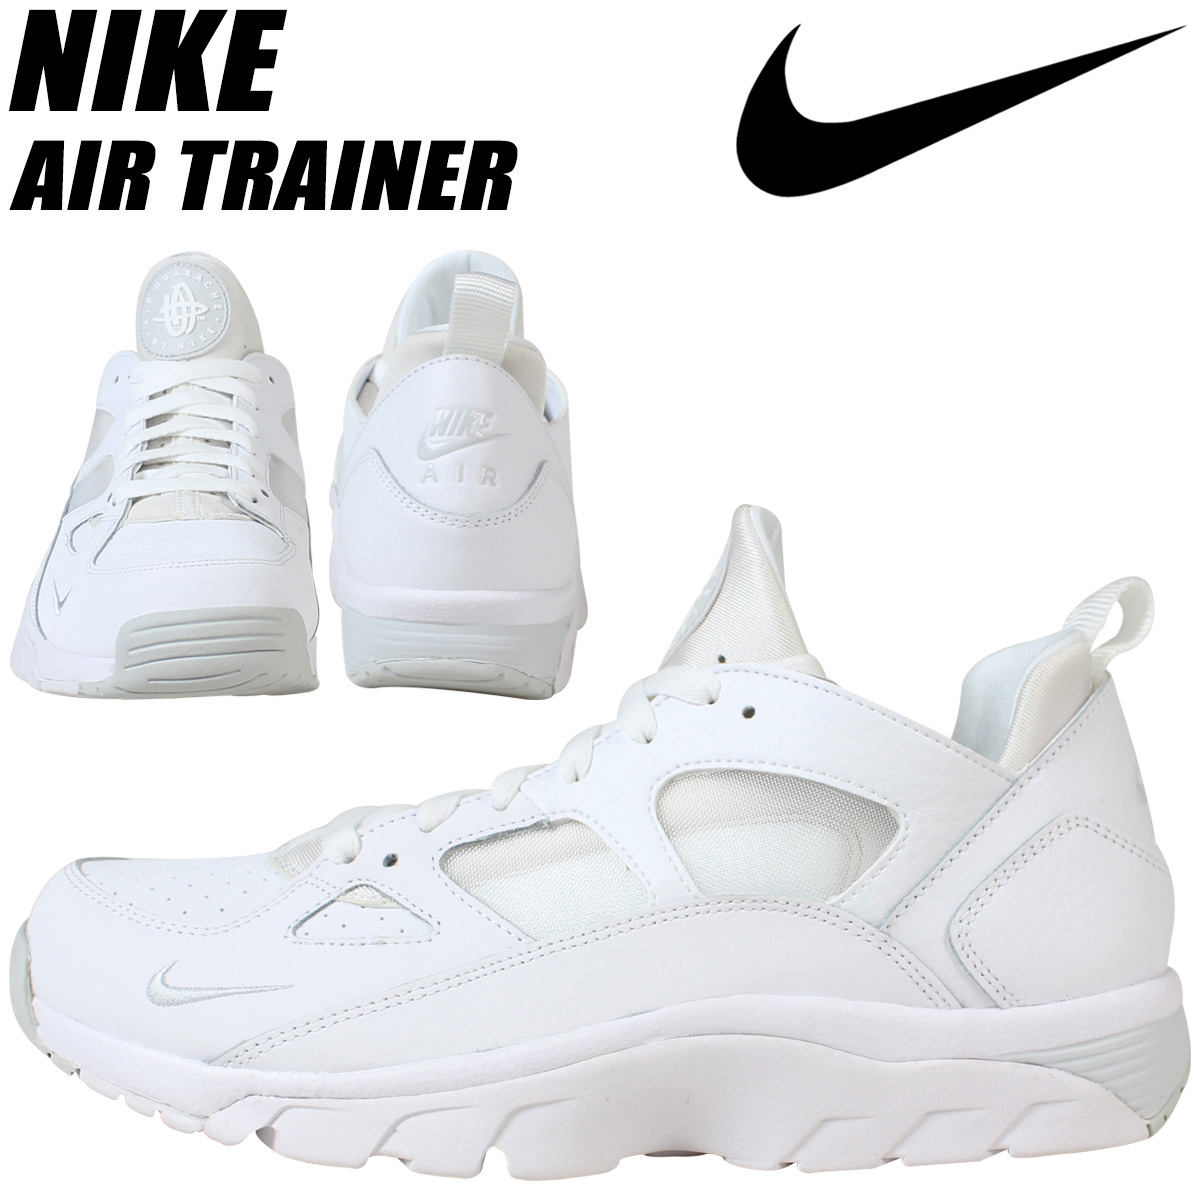 06aaa3c92713 greece nike air trainer huarache low triple black 060d8 8044b  new zealand  the origin of the name comes from the greece myths of one jeff johnson